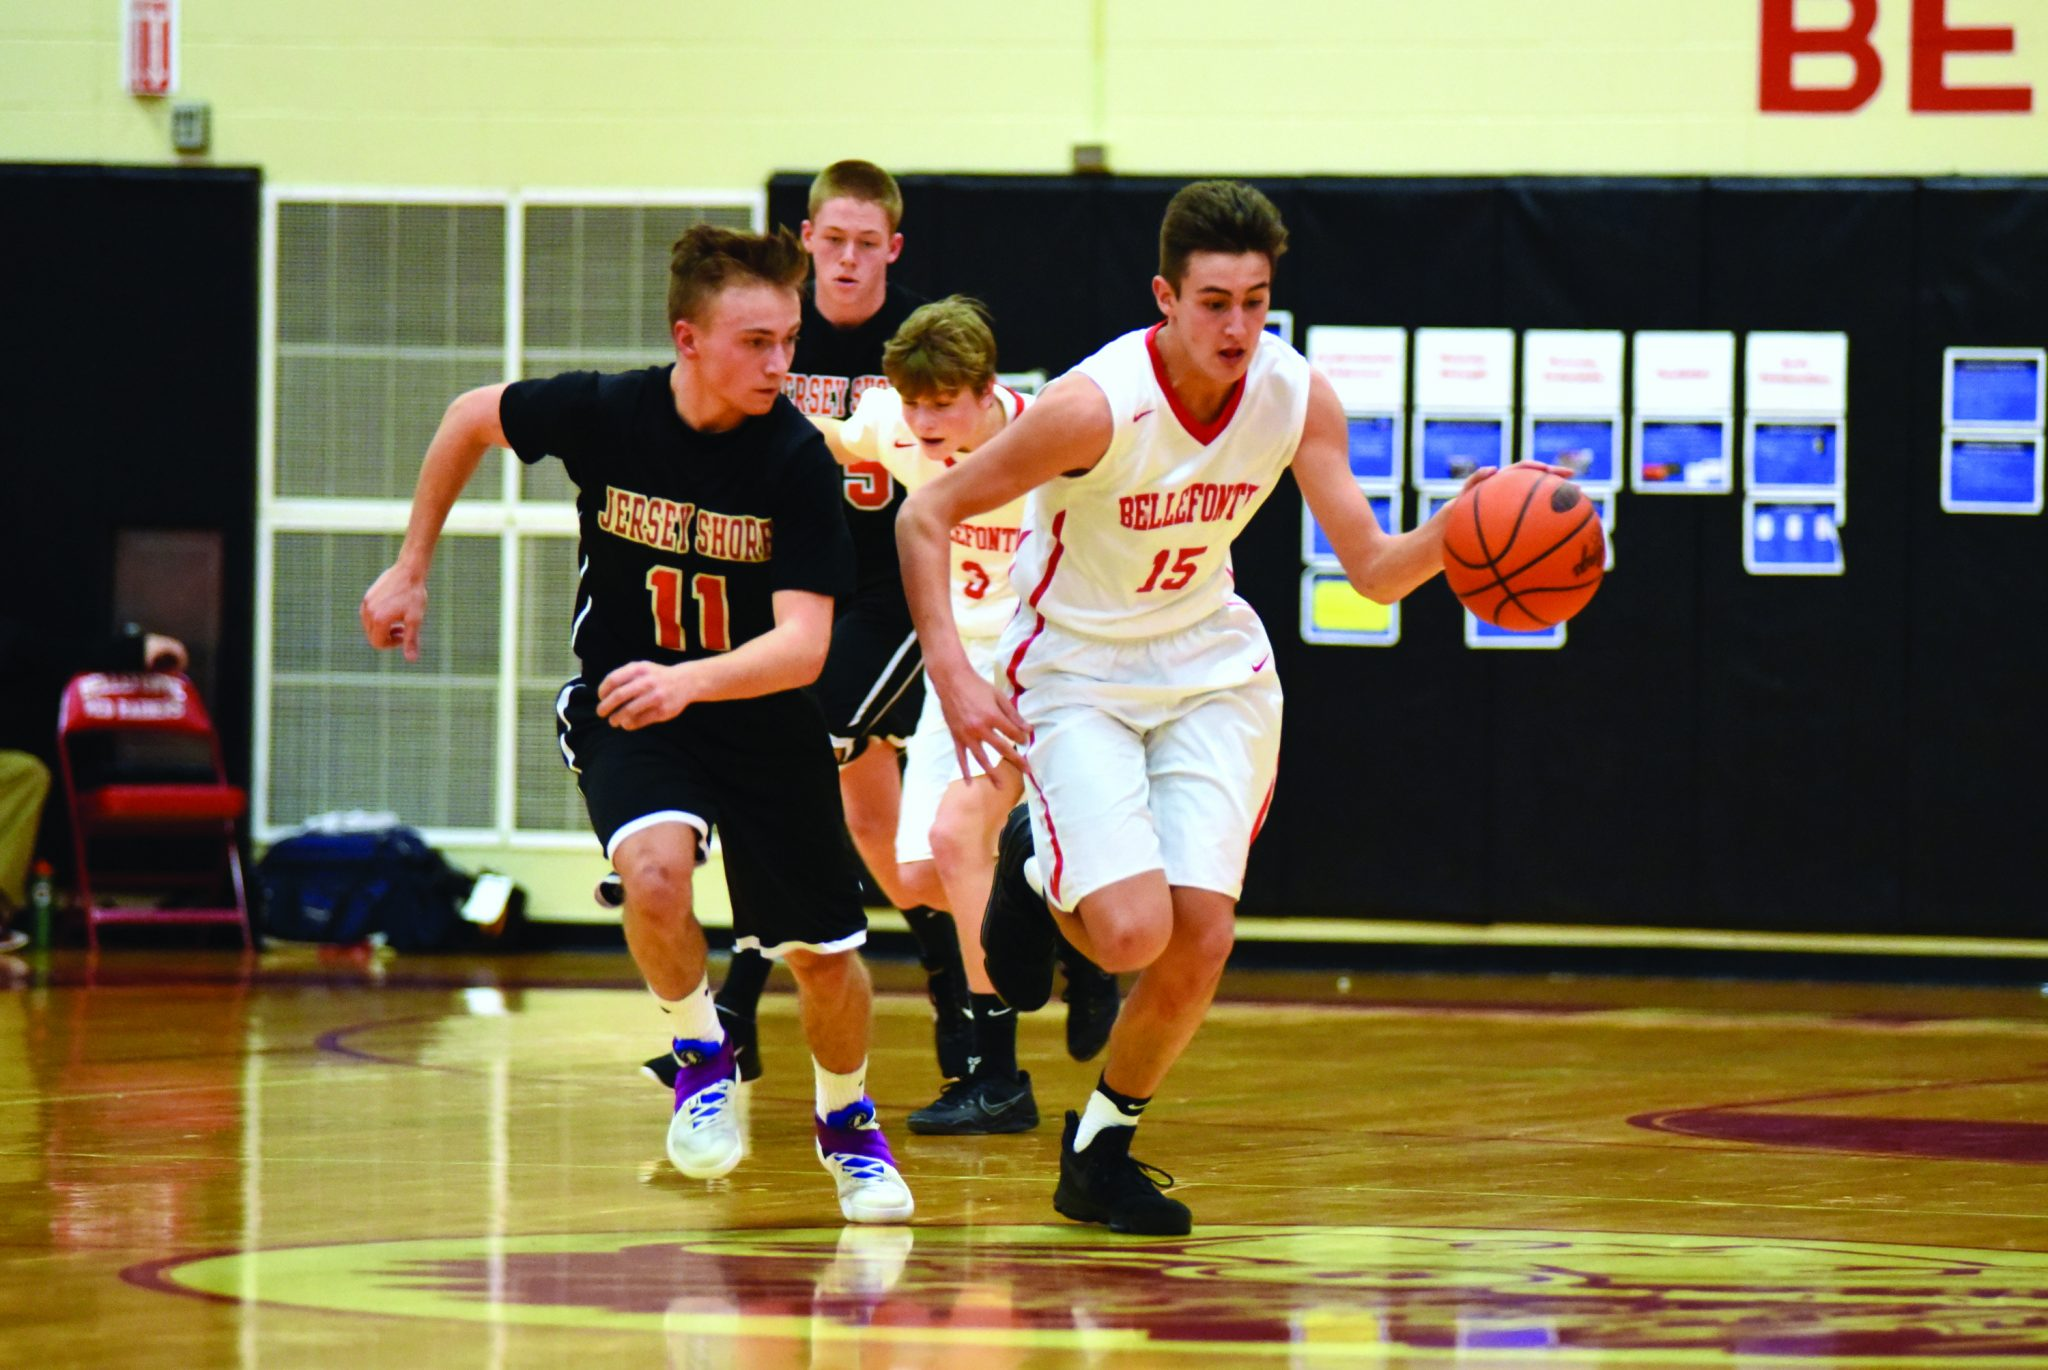 SHORE WINS THRILLER: Jersey Shore barely holds on against the Red Raiders of Bellefonte, 54-53 ...